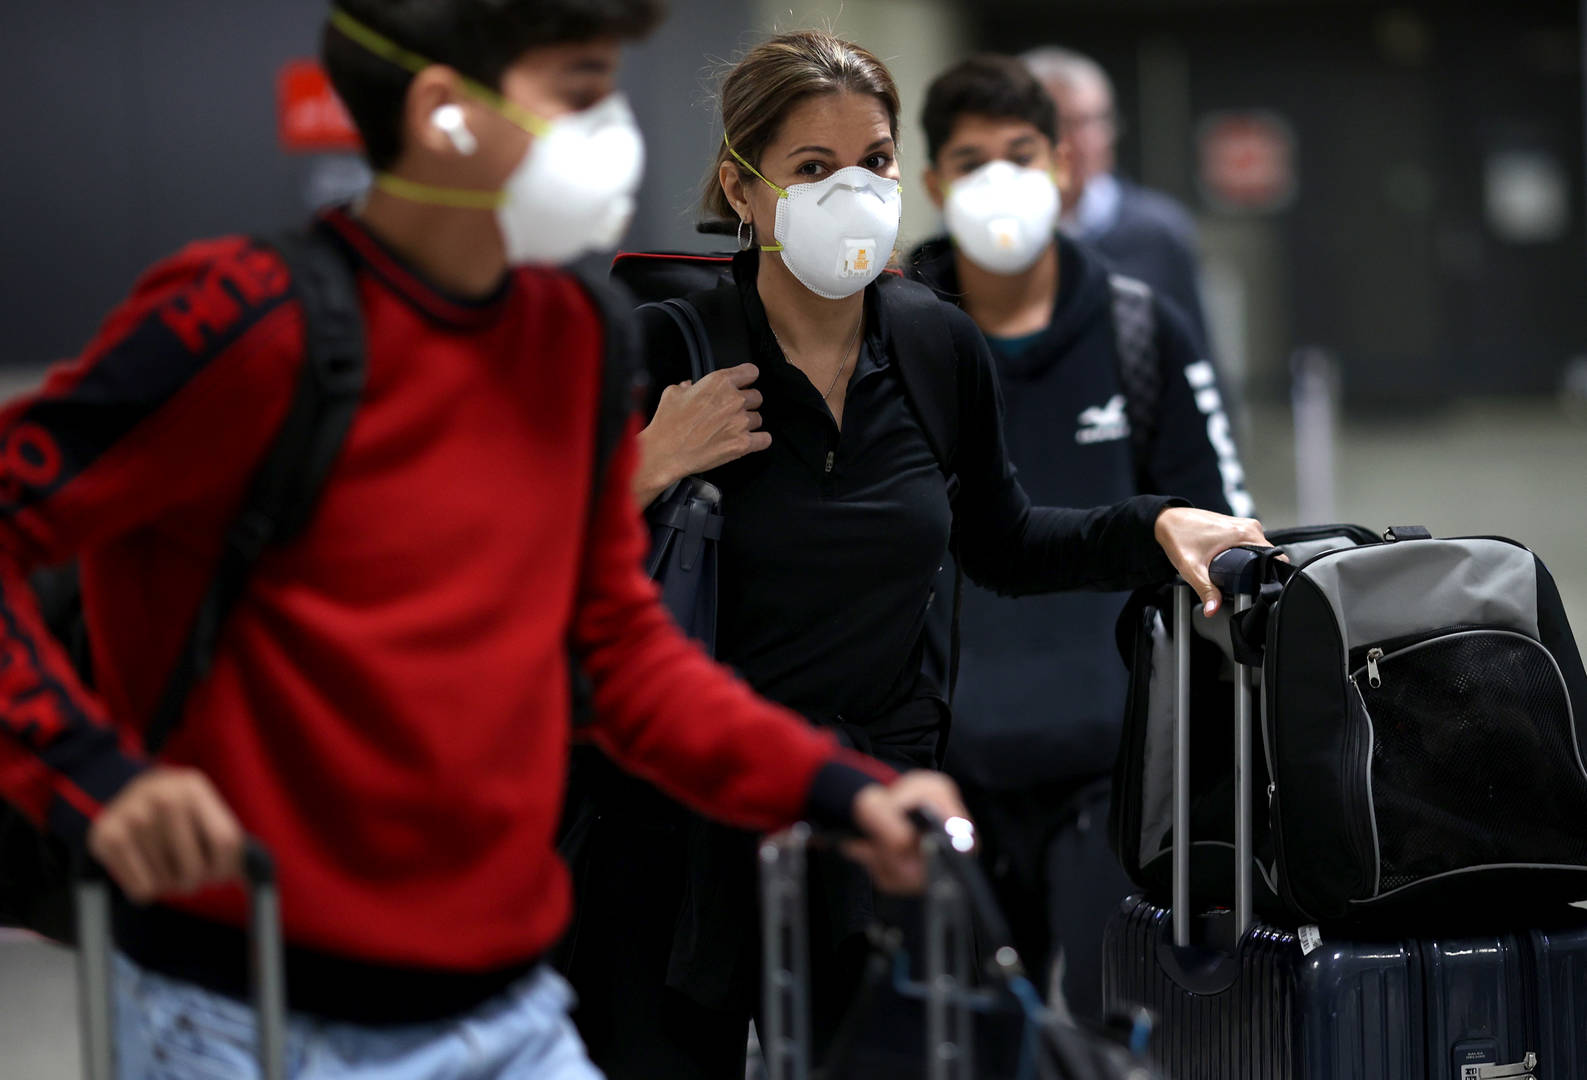 United States U.S. coronavirus outbreak China Italy confirmed cases worse higher number prediction projection